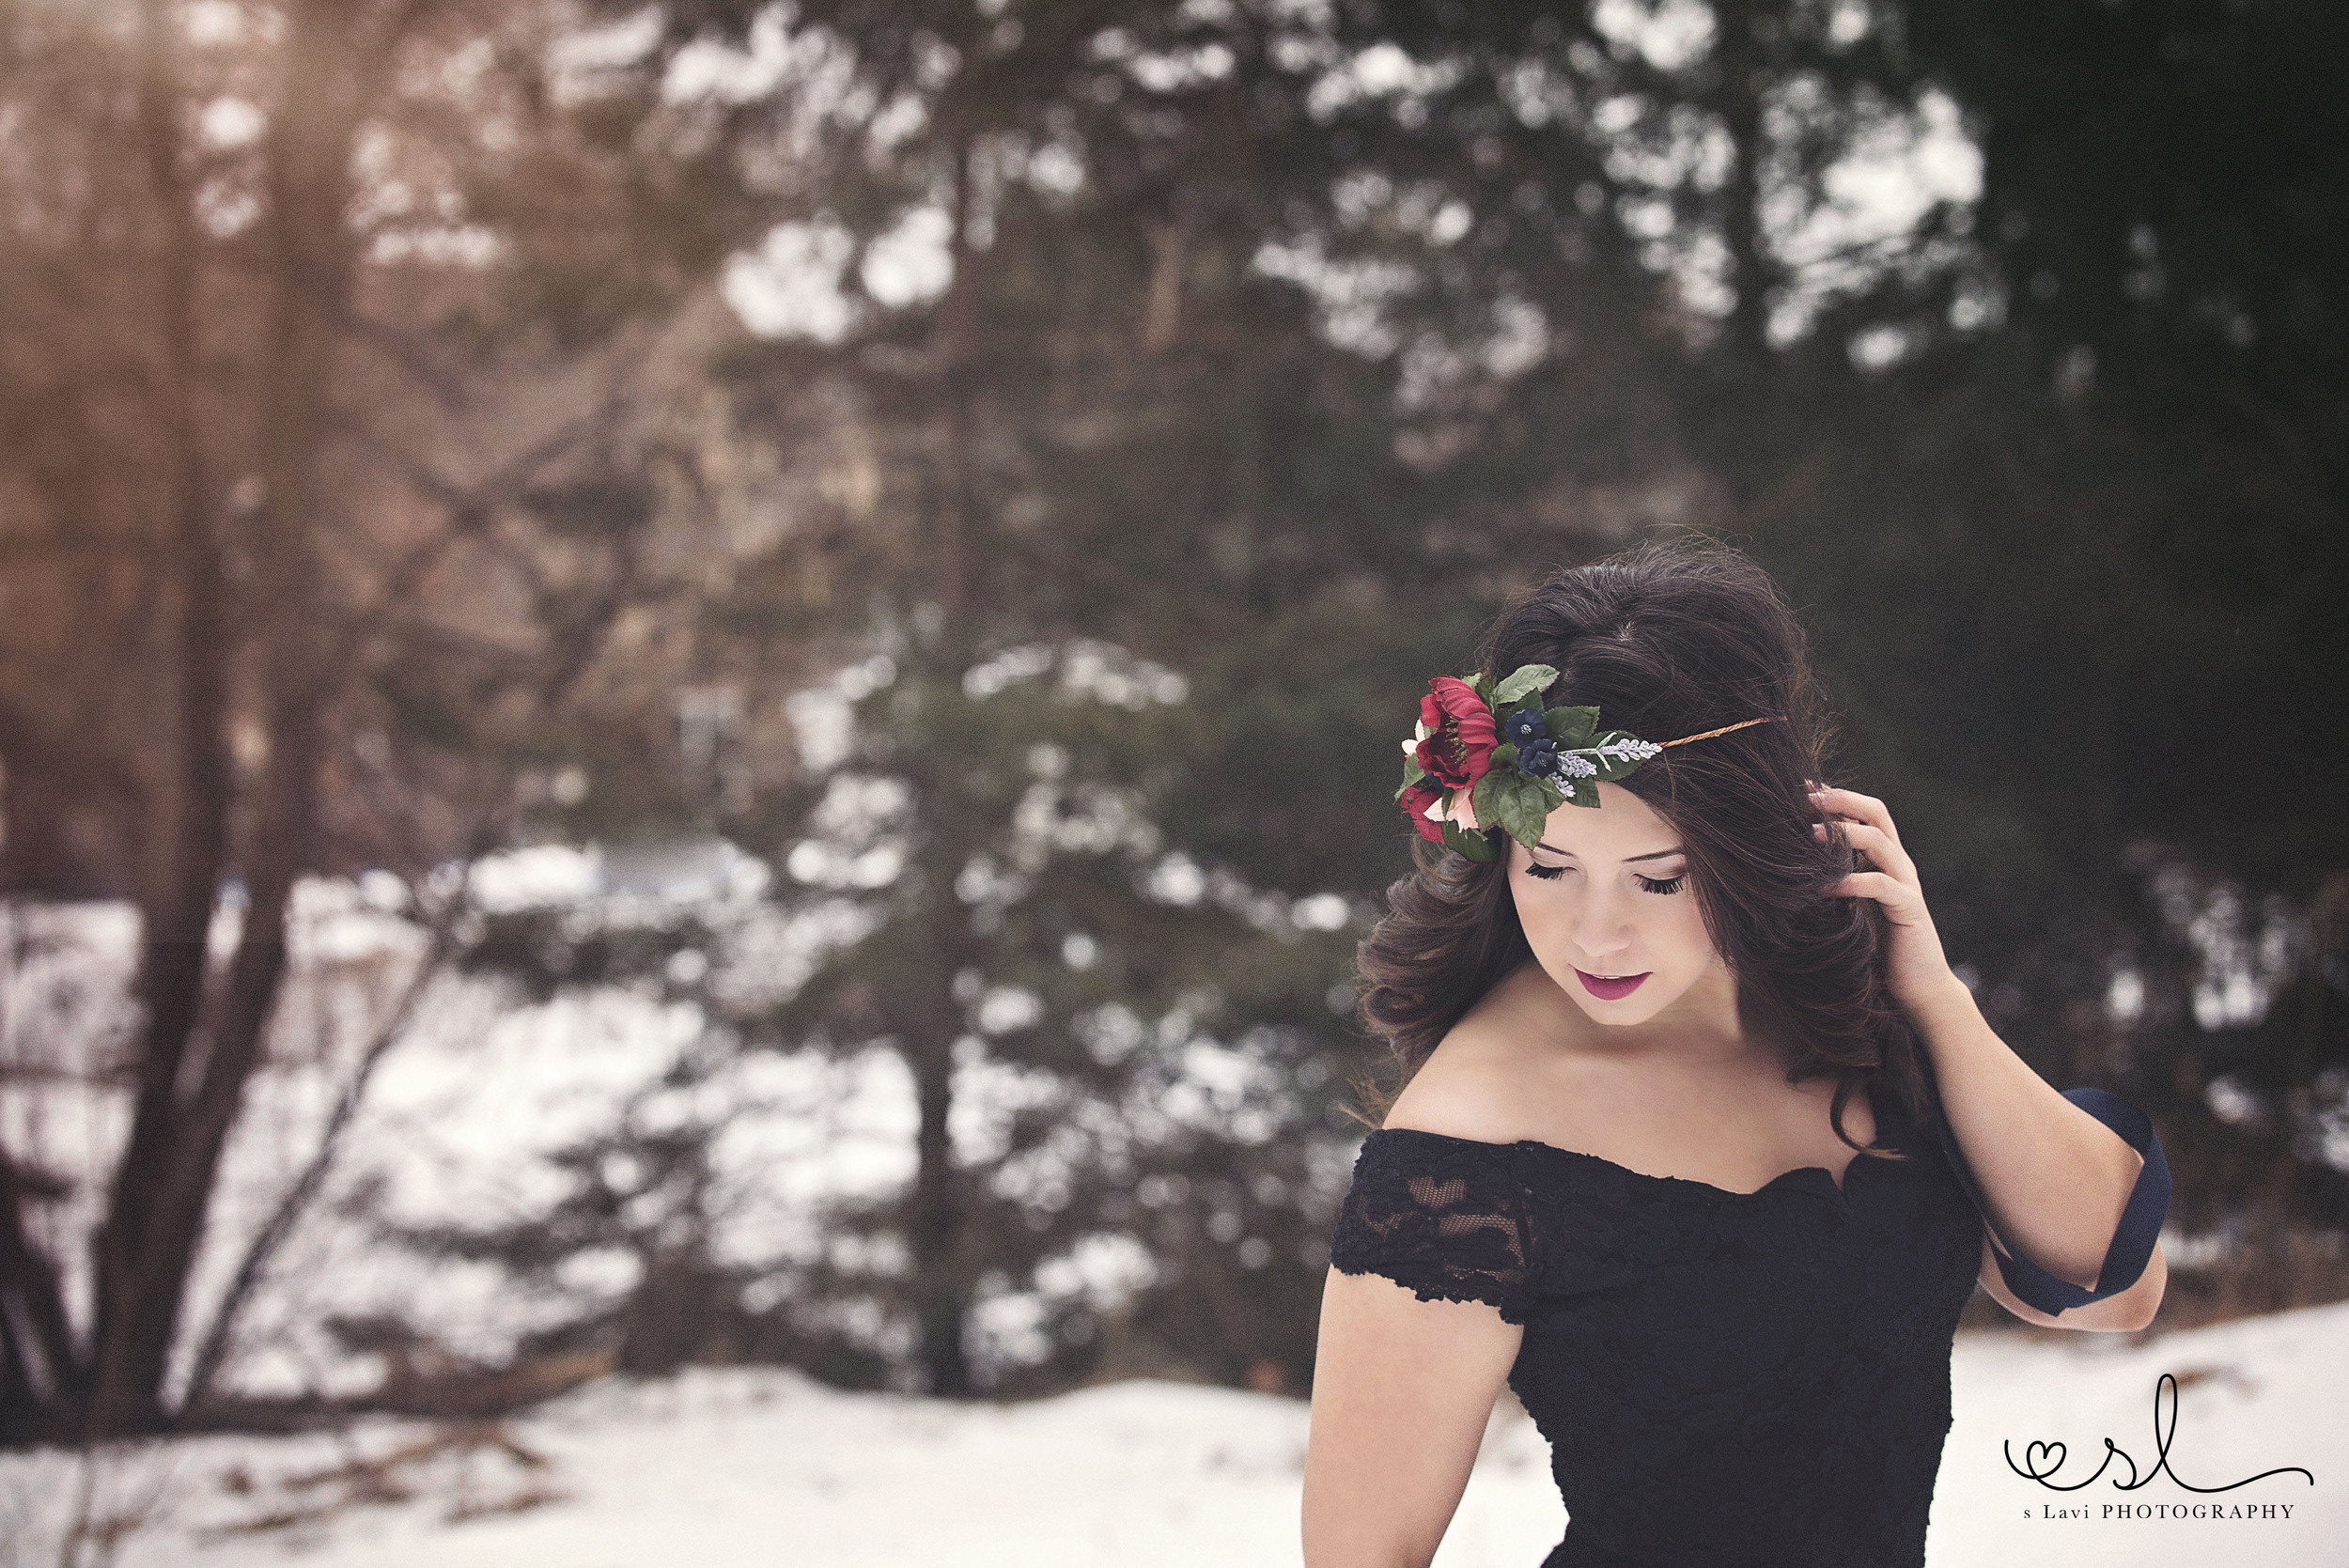 Stacey Paige Flower Crowns-Stacey Paige Flowers-0005.jpg